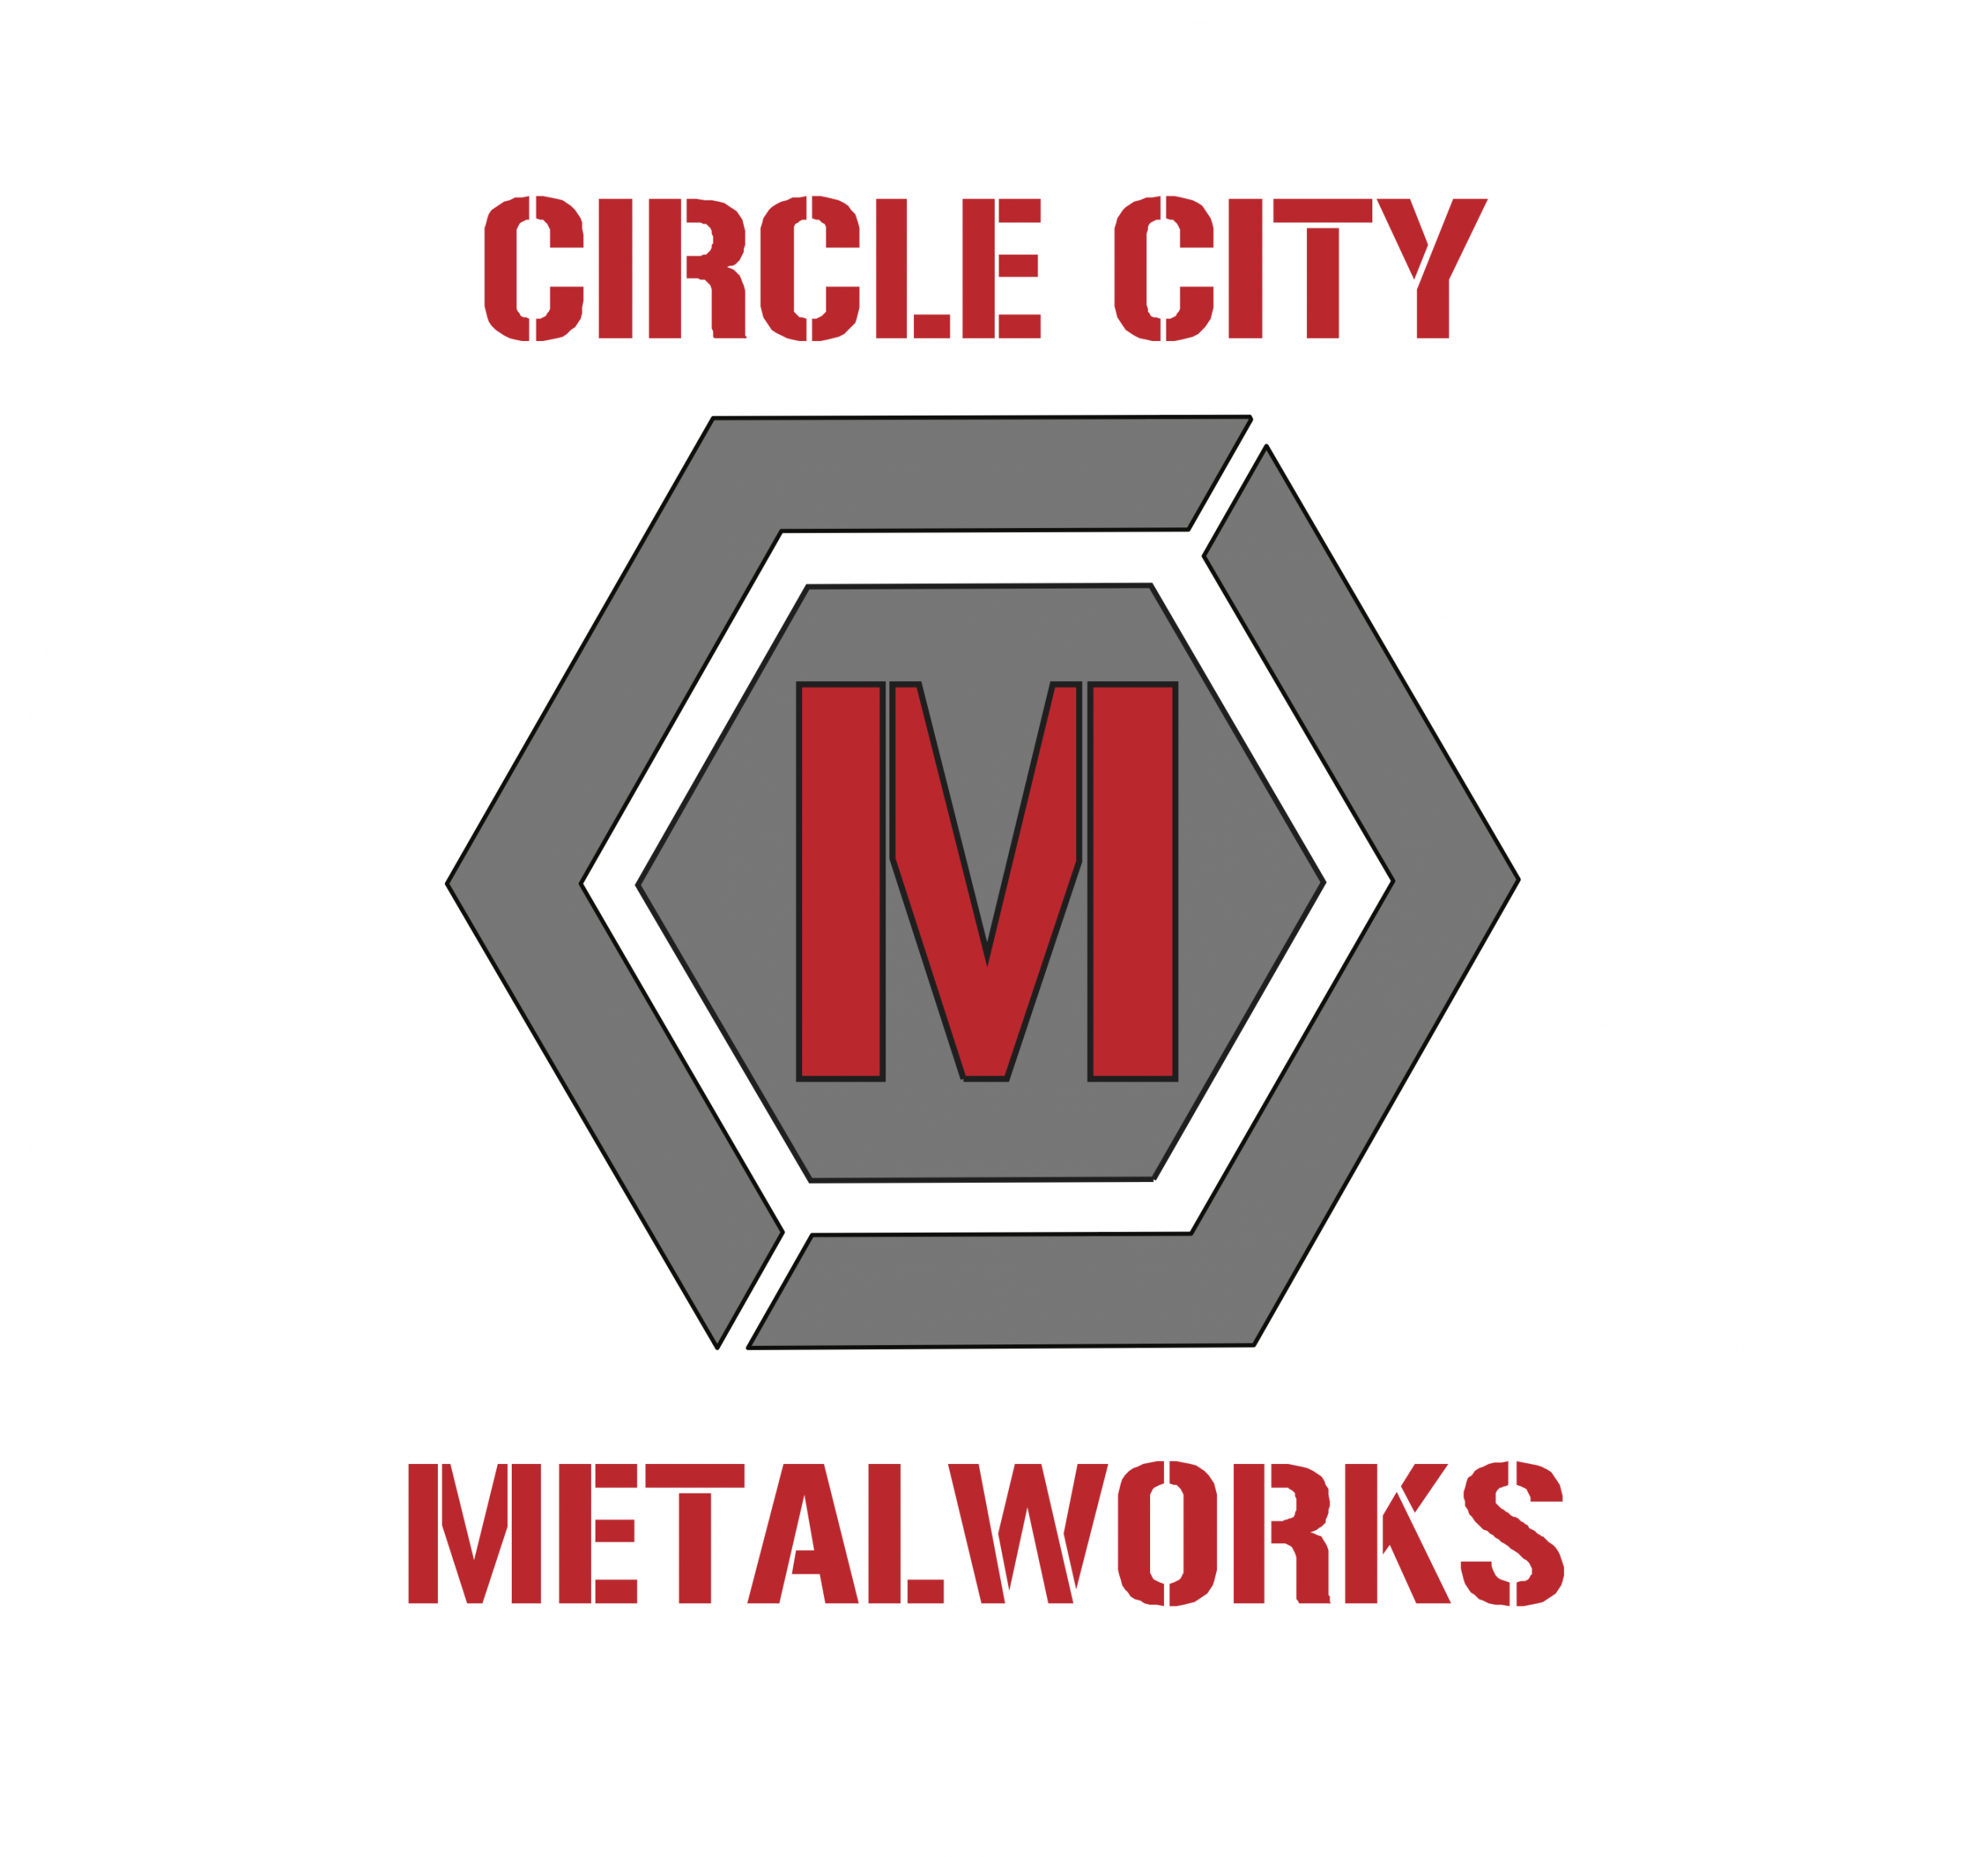 Circle City Metalworks